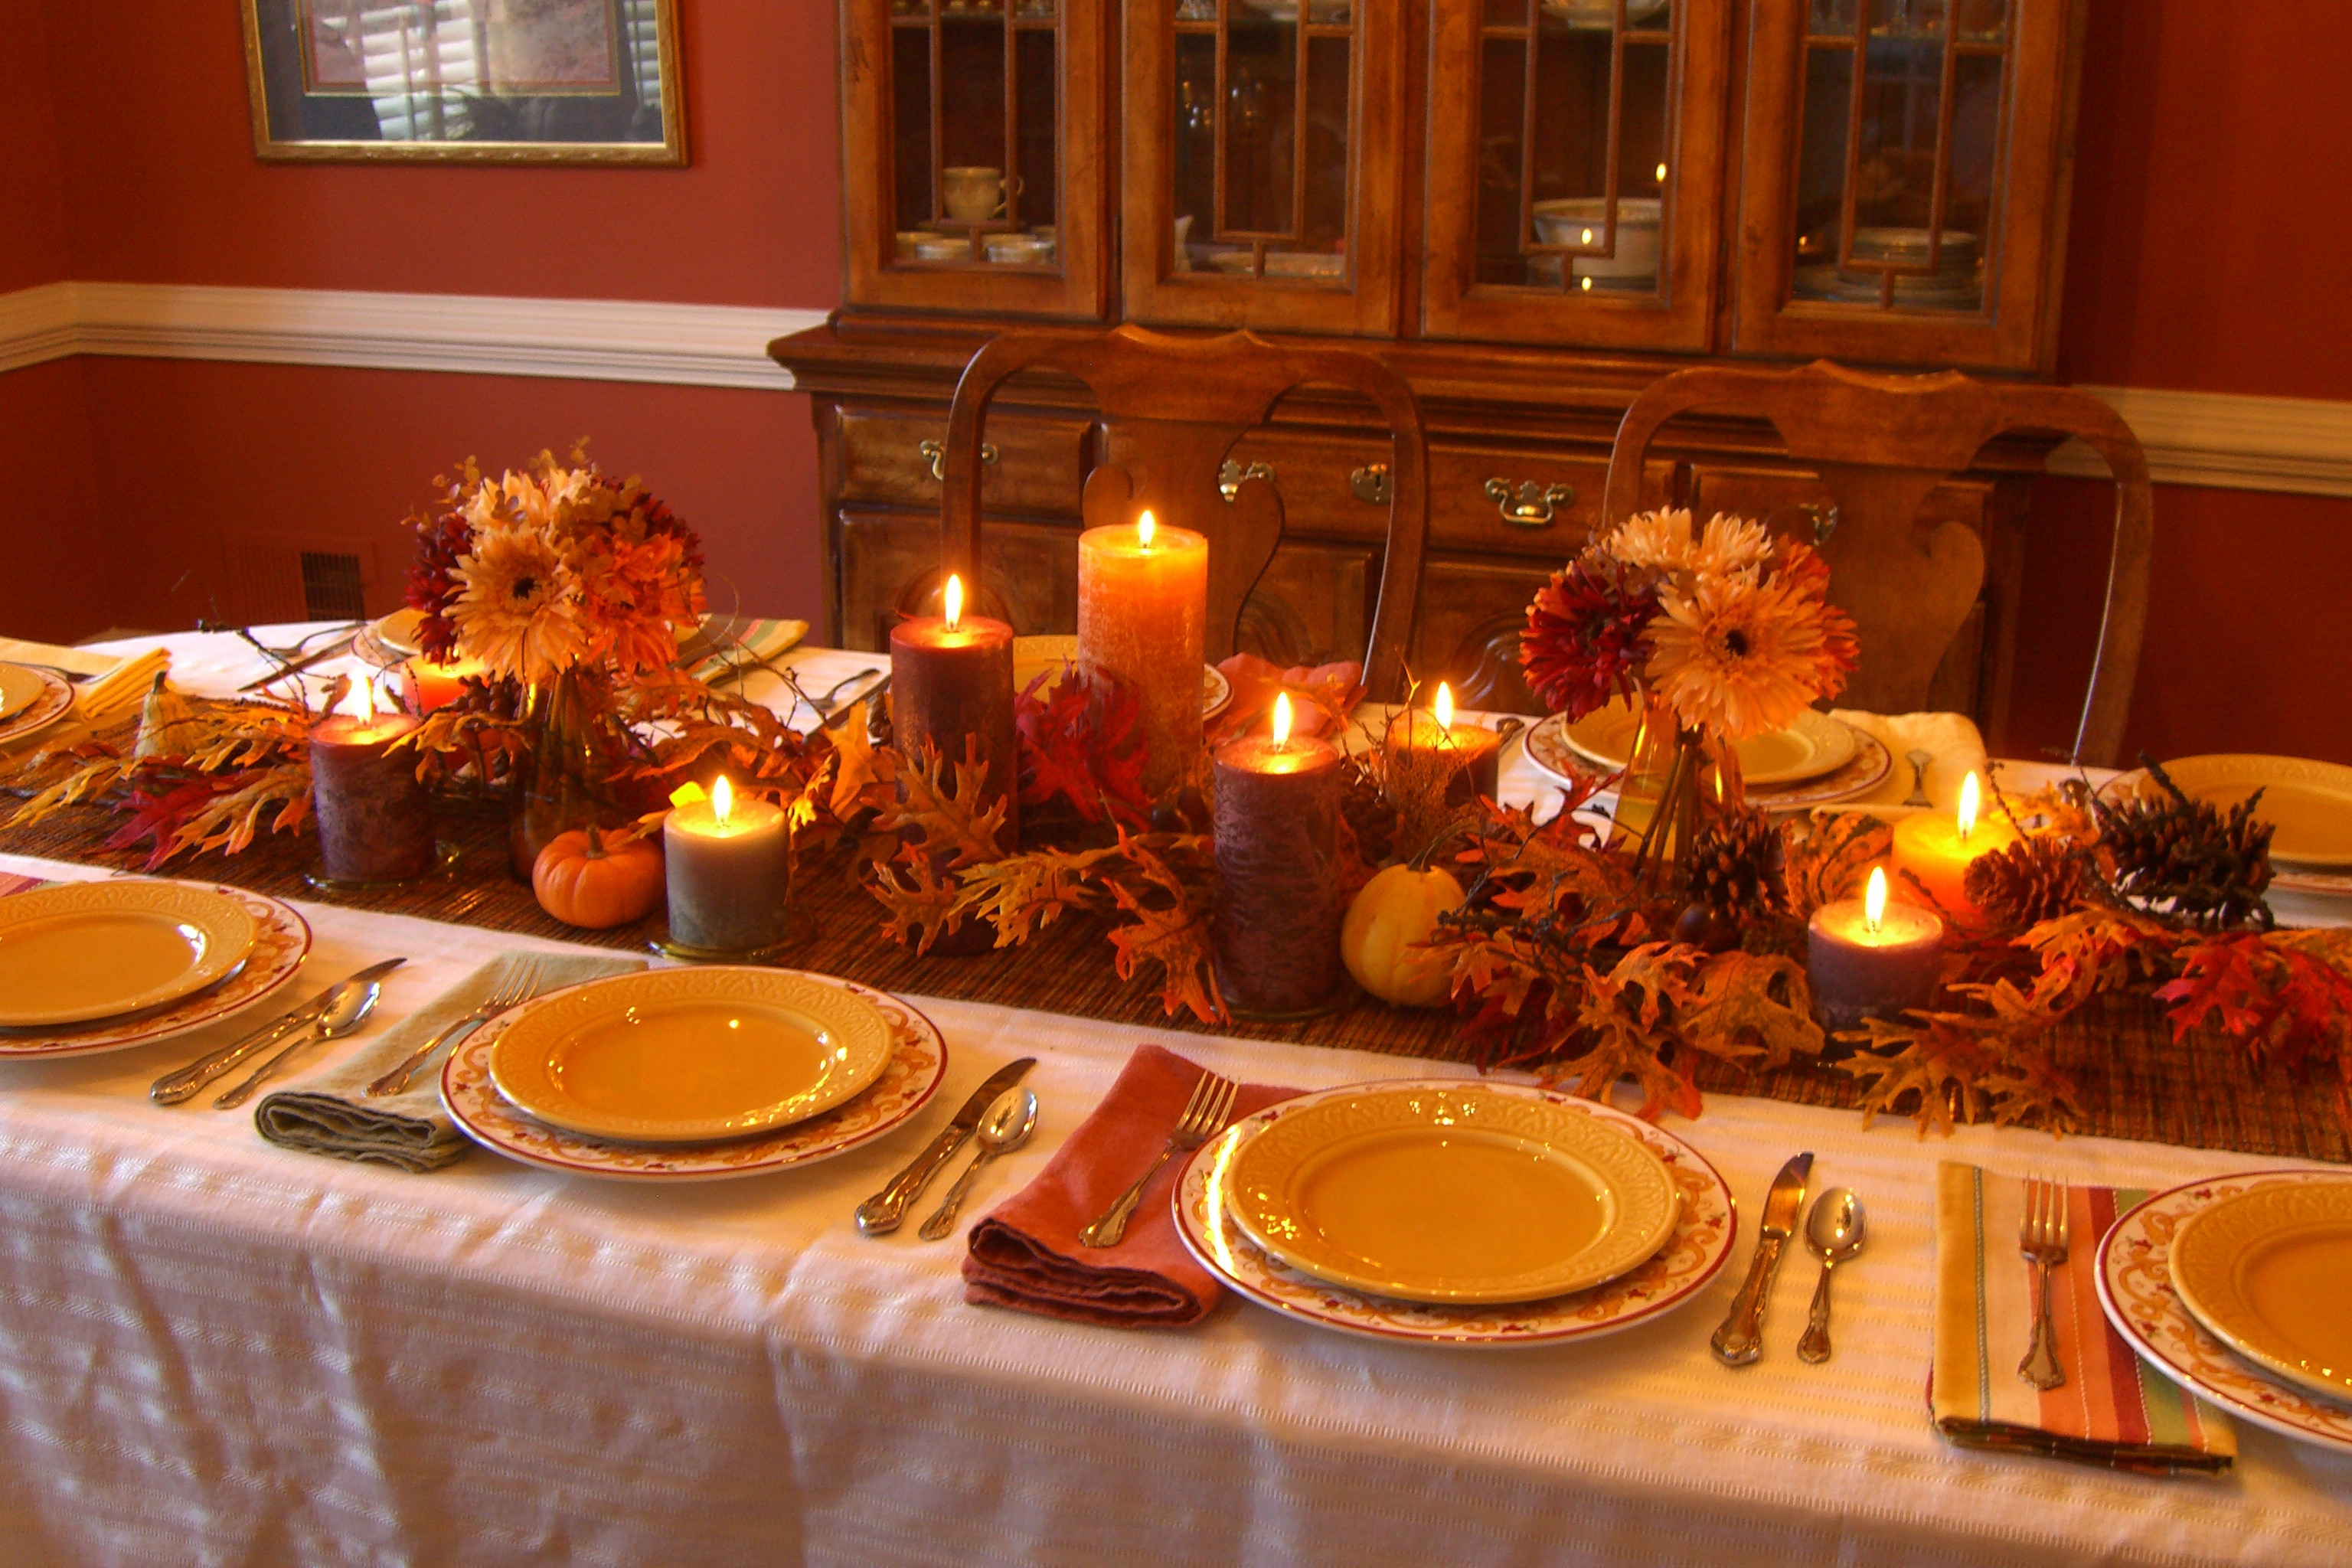 Thanksgiving Dinner Decorations  Decorating My Thanksgiving Table